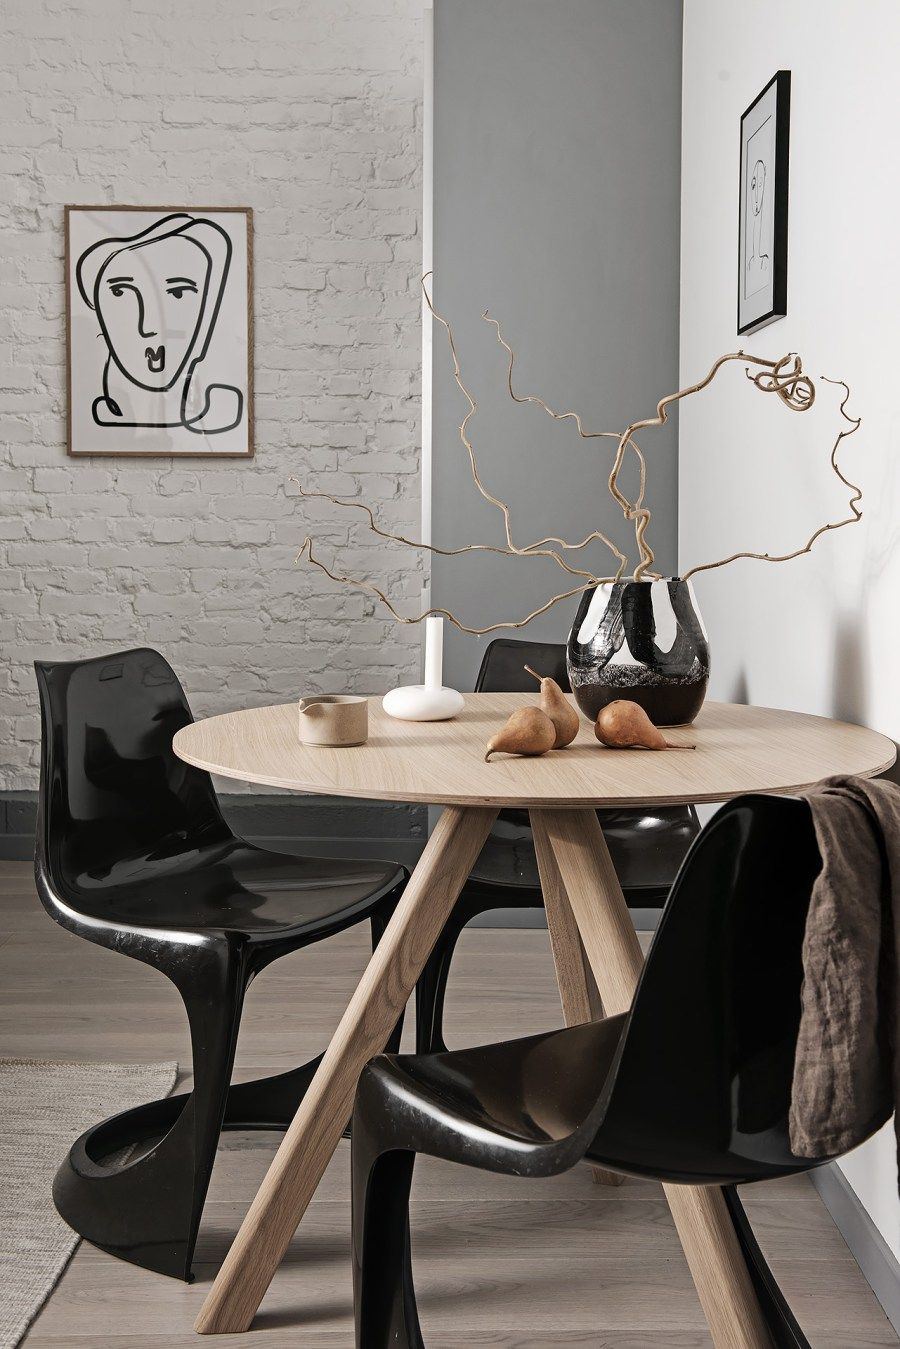 I wish I lived here: New York style loft with Crittall style windows - monochrome dining space, wooden table